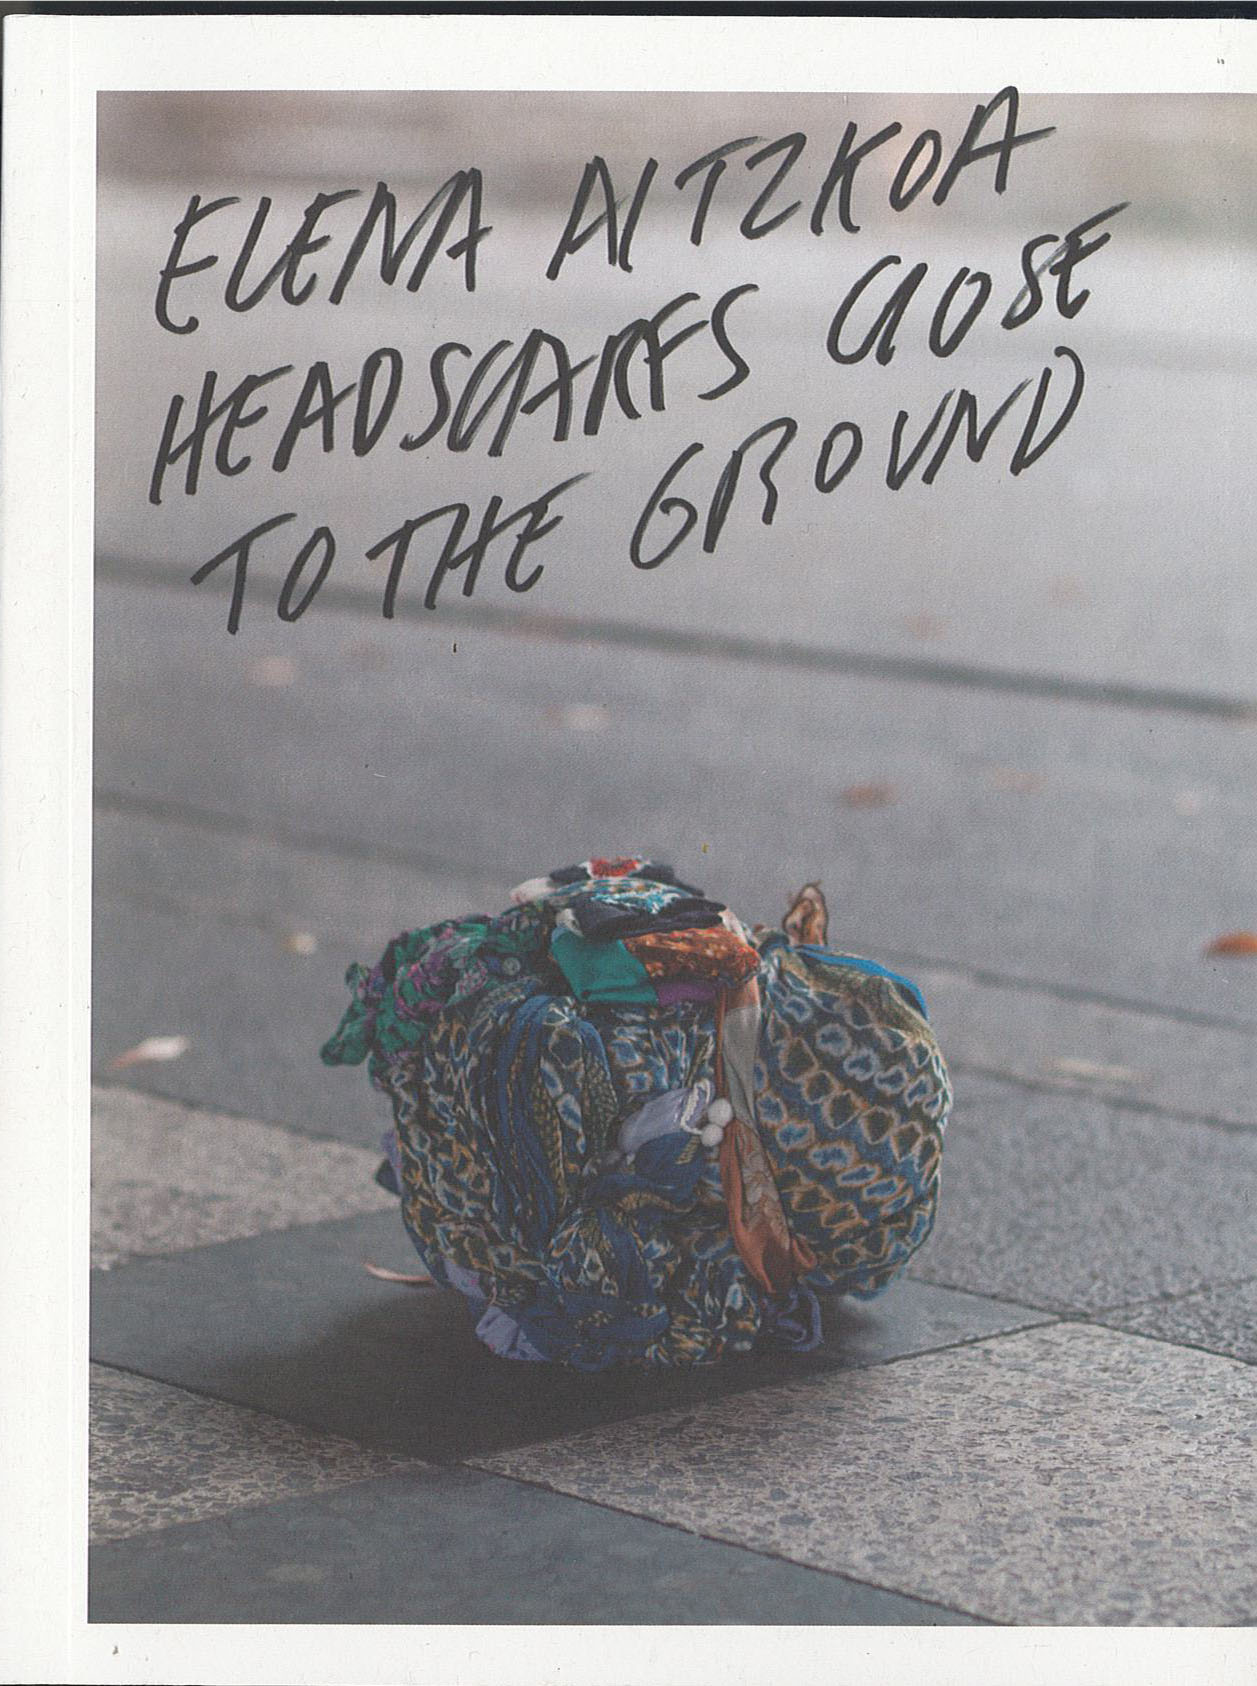 Headscarfs close to the ground, Elena Aitzkoa